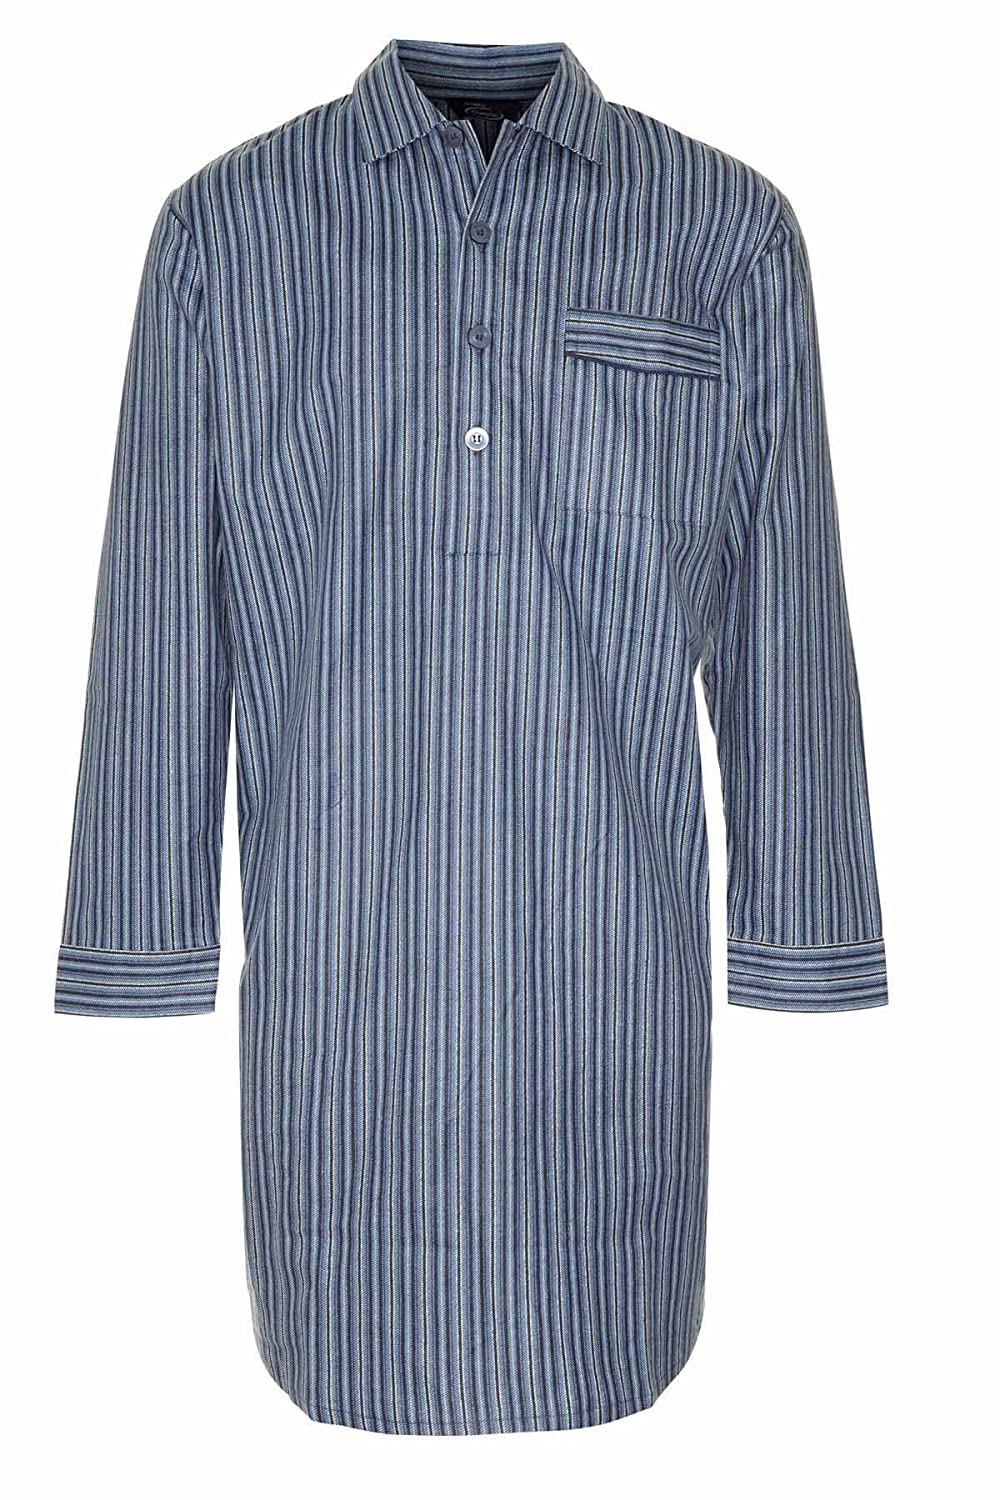 21cb9ebb06 Mens Champion Quality Nightshirt Night Shirt Brushed Cotton  Amazon.co.uk   Clothing